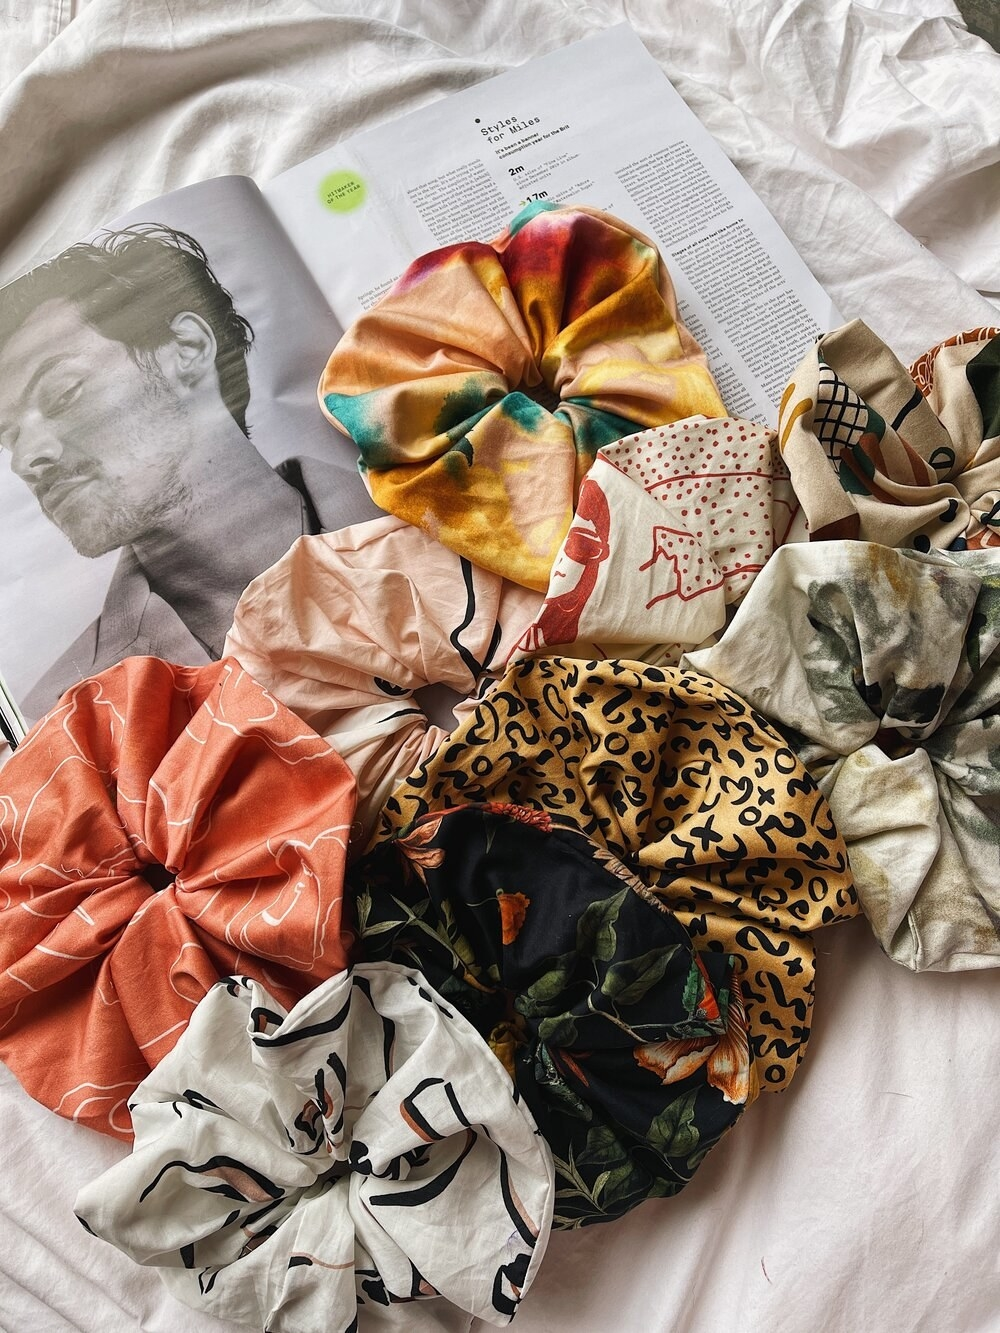 the satin scrunchies in various patterns and colors